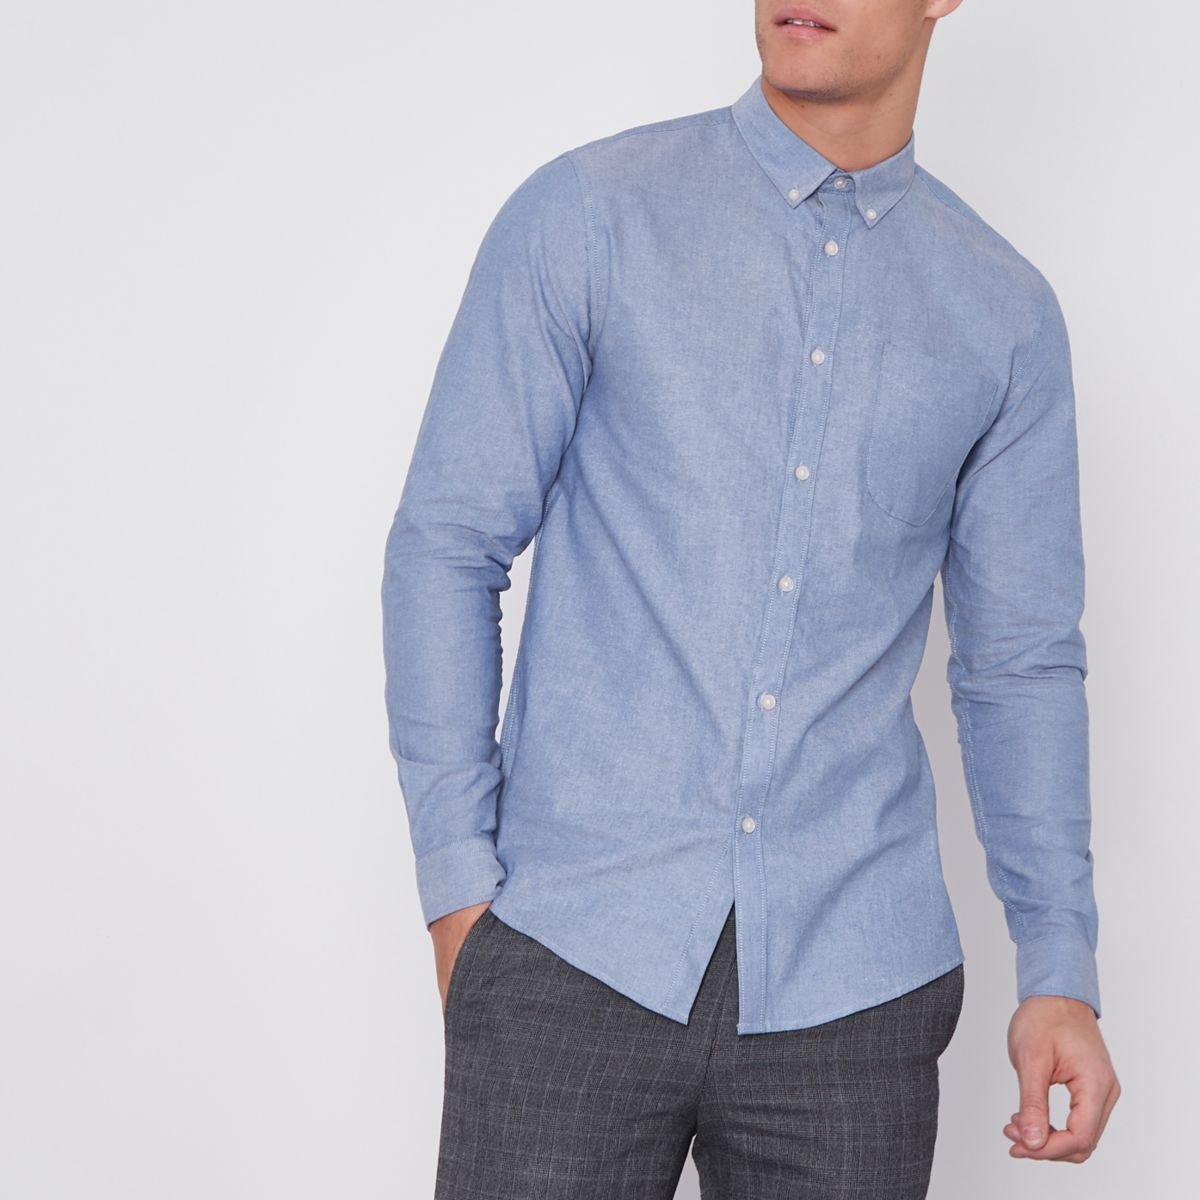 Find great deals on eBay for button down oxford shirts. Shop with confidence.